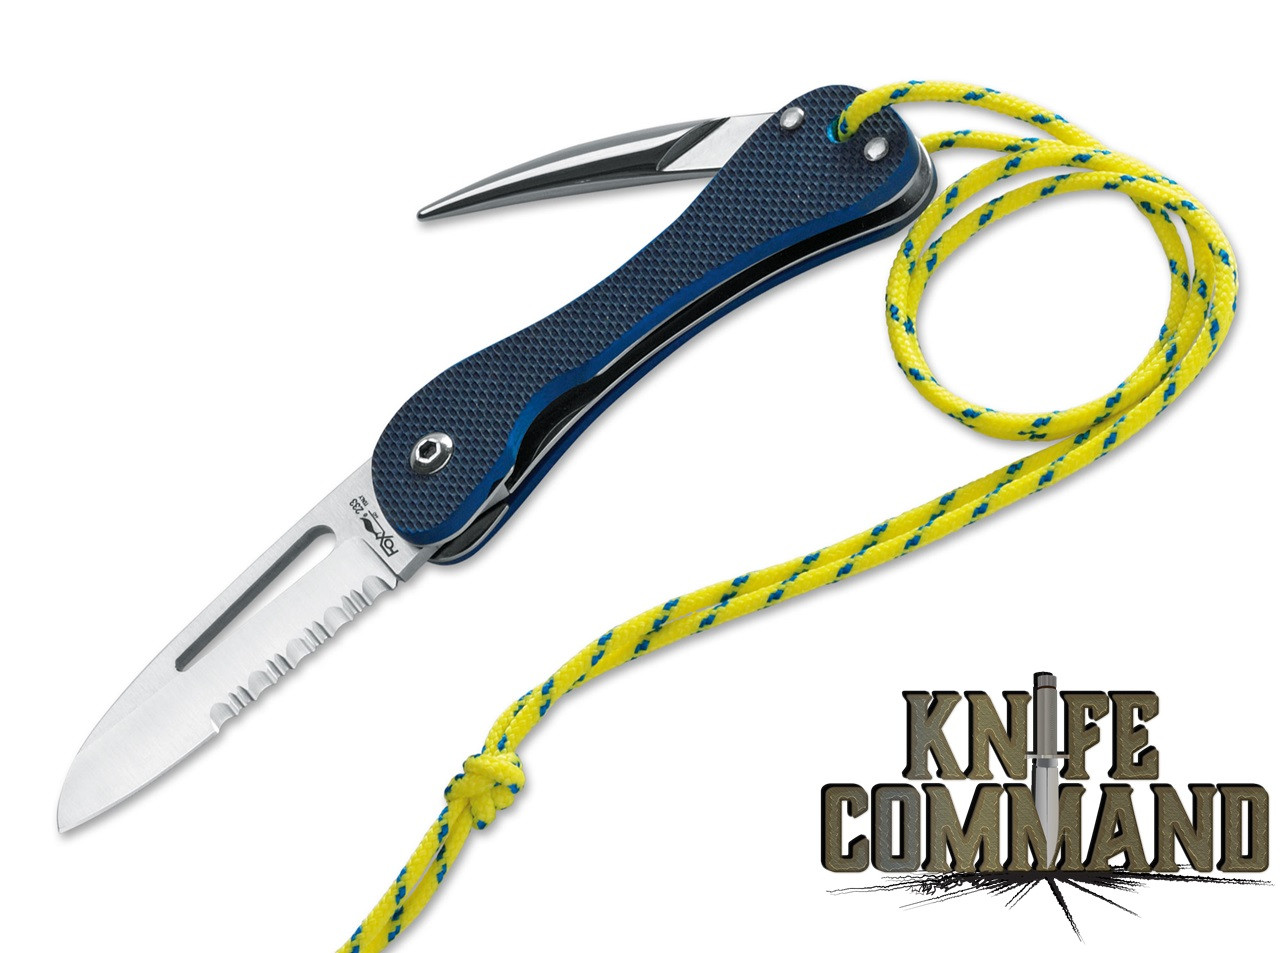 Fox Knives FX-233 G10 Blue Sailing Rigging Knife with Marlin Spike